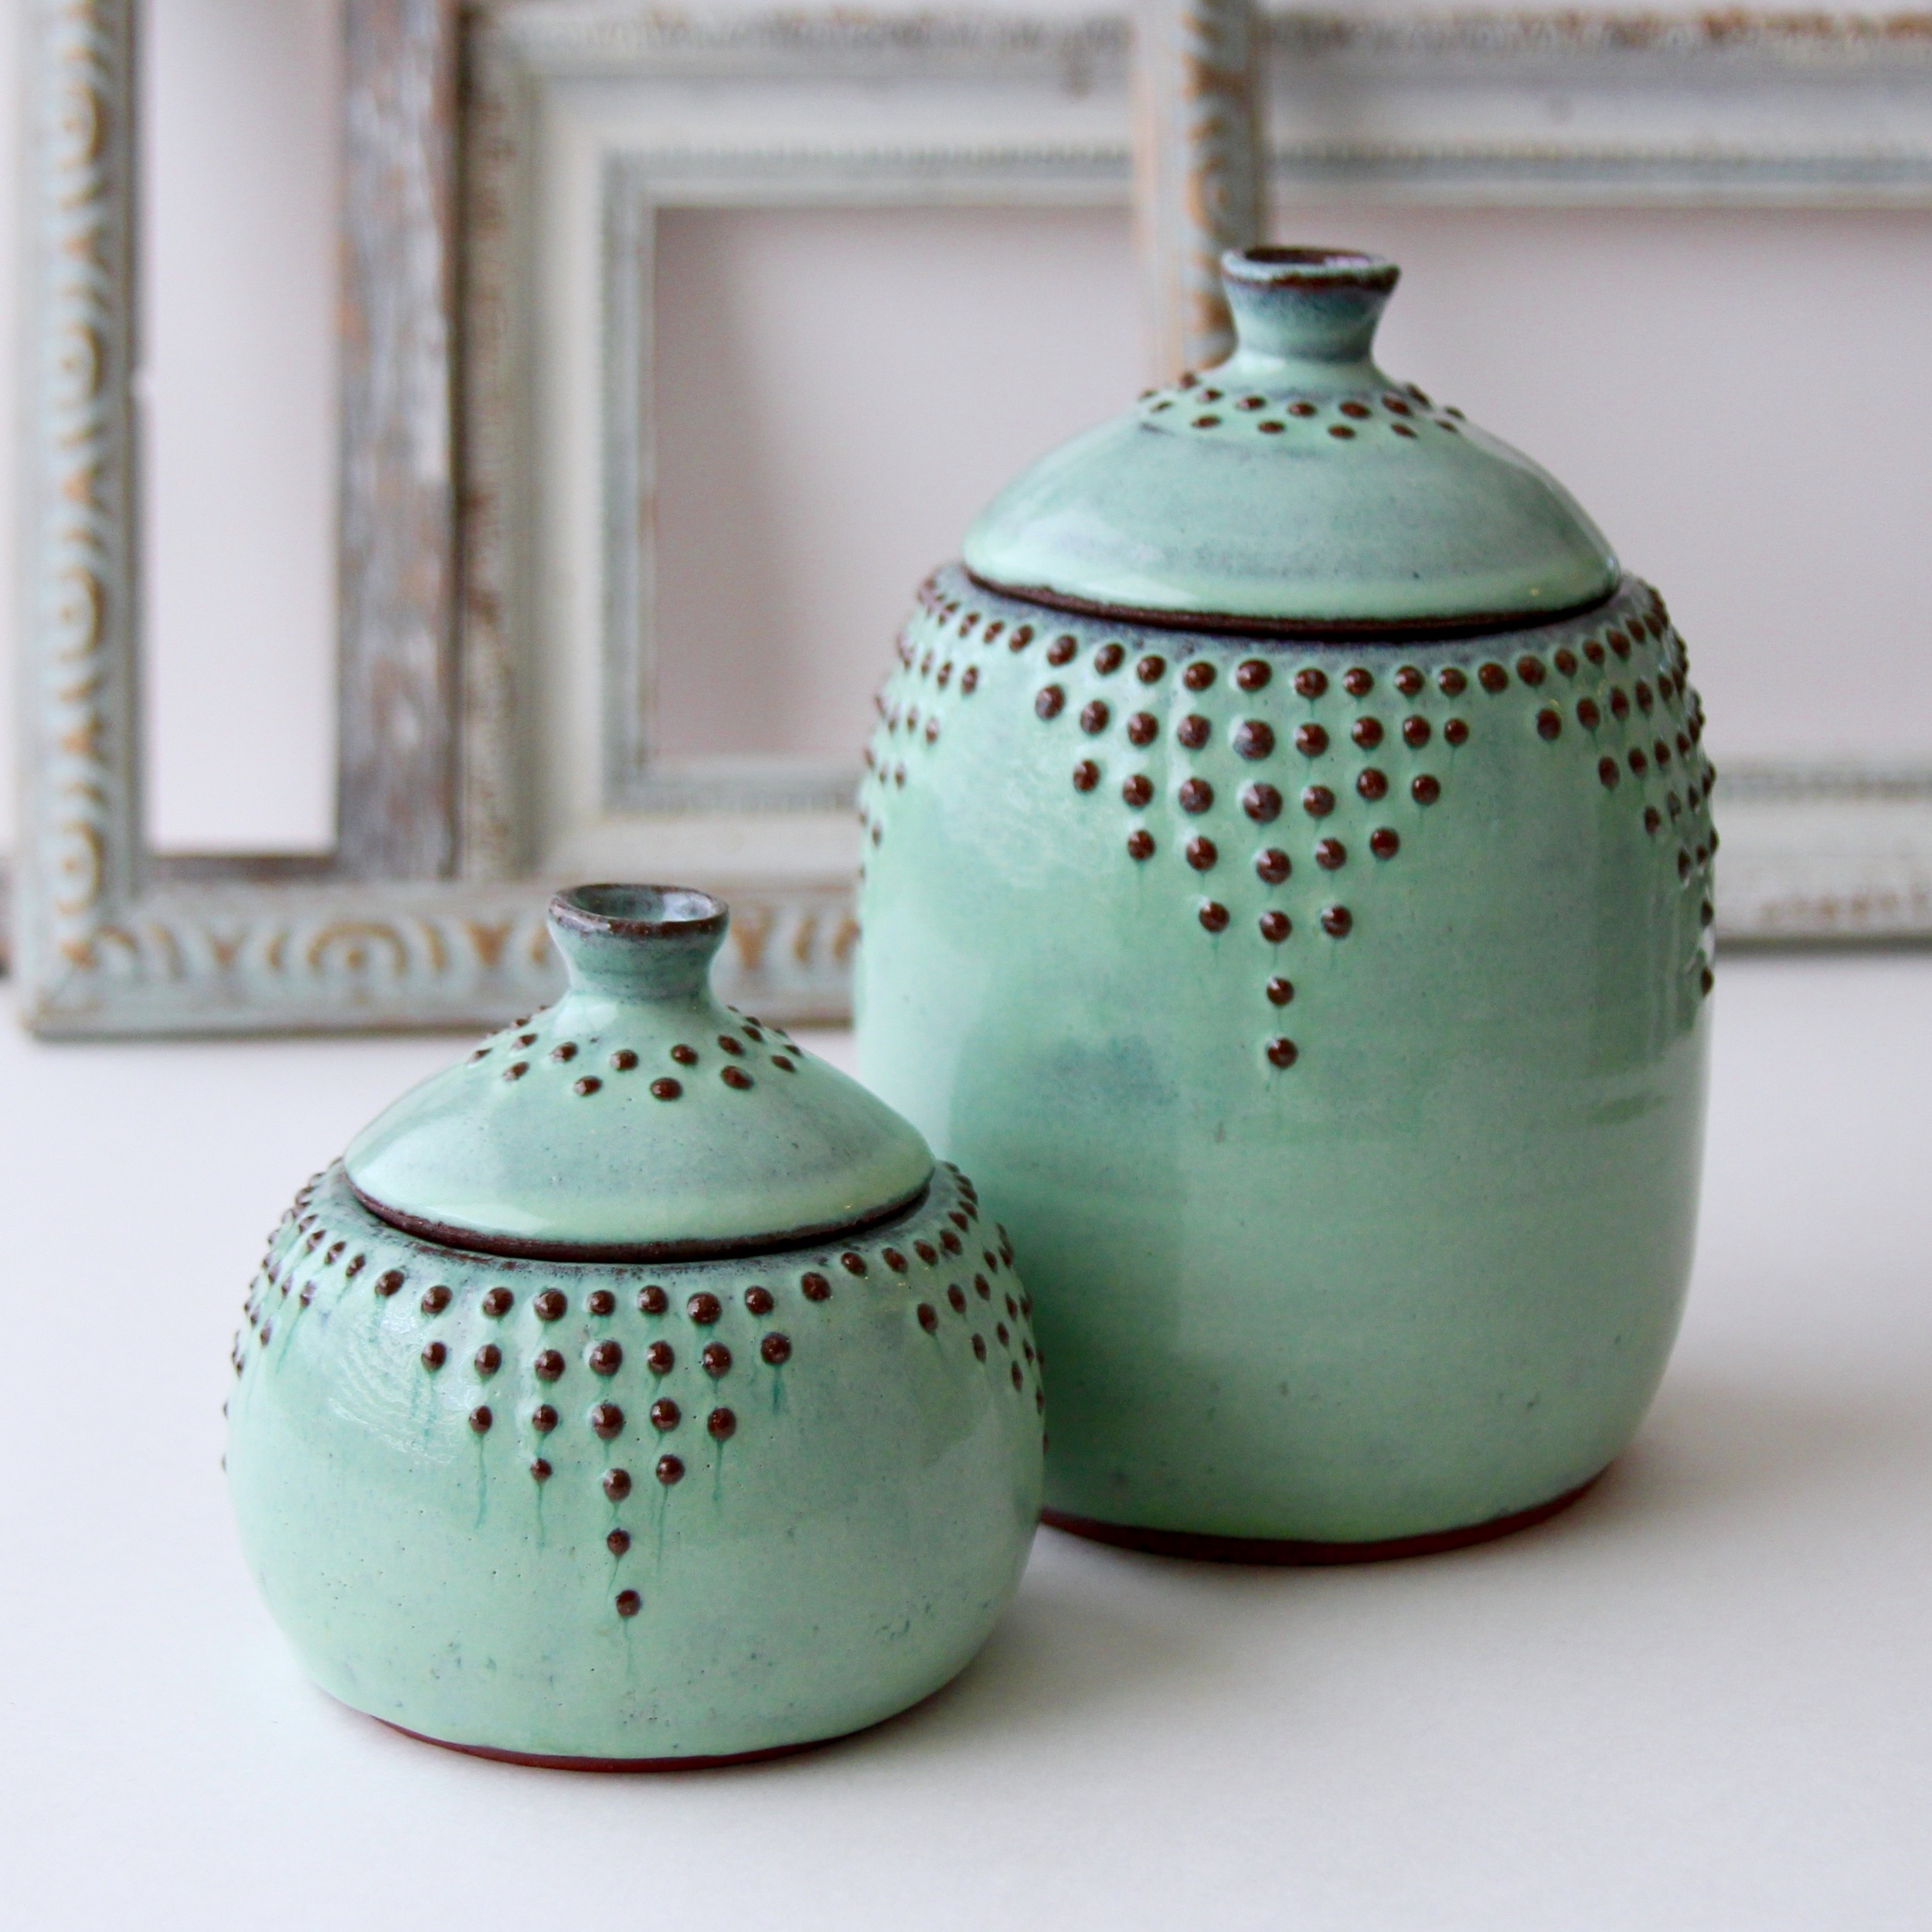 Lidded Jars in Aqua Mist